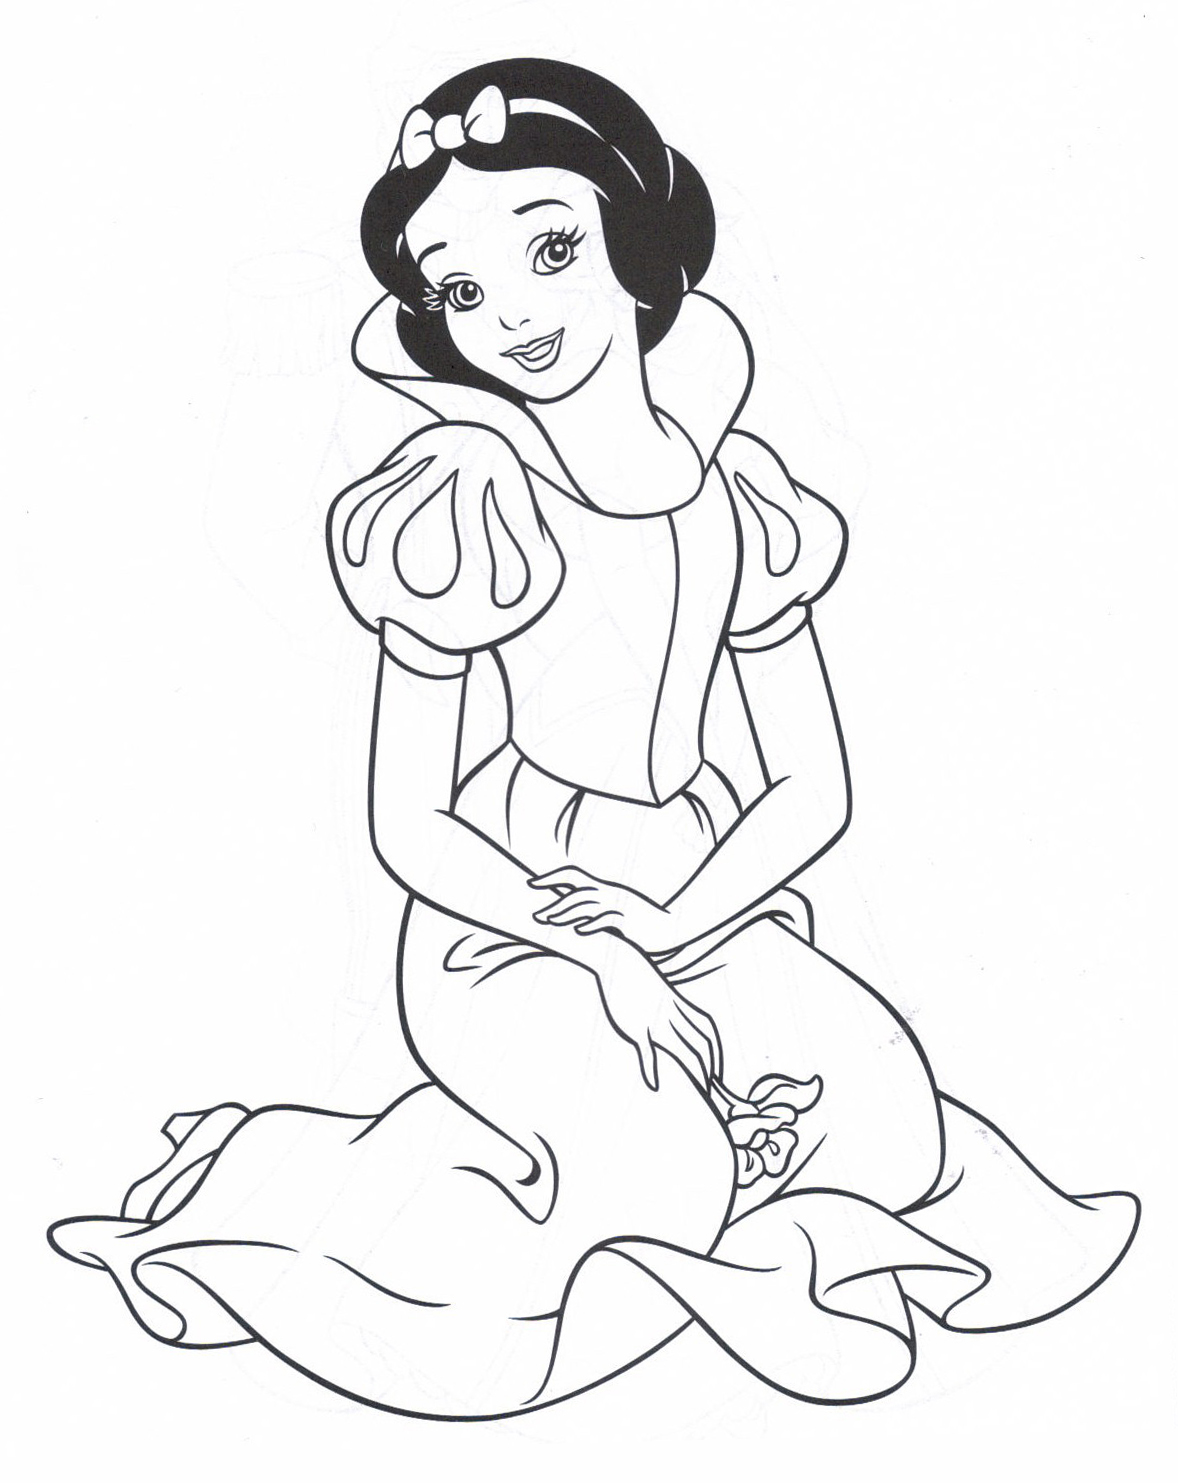 Snow White Coloring Pages Learn To Coloring Snow White Coloring Pages